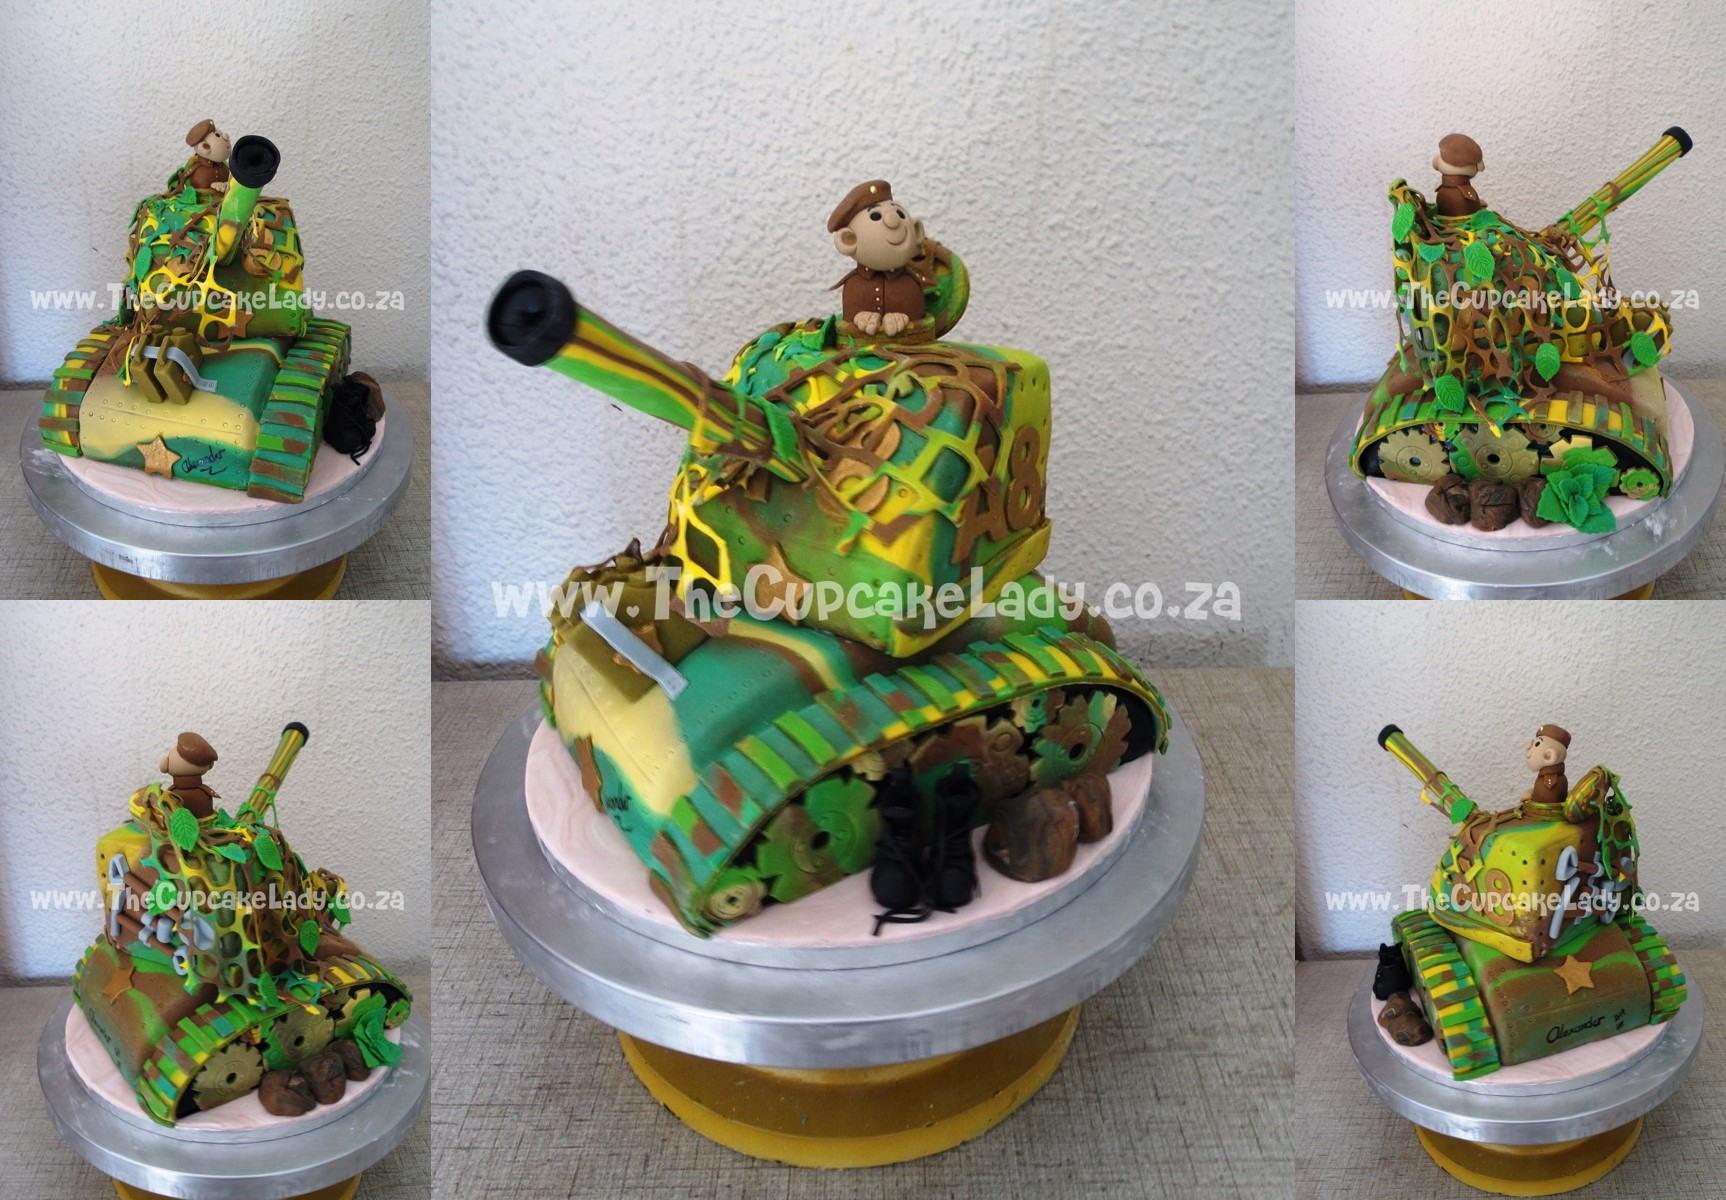 Custom made, sugar paste boots, sugar paste soldier tank driver wearing a beret, tank cake, army cake, novelty cake, sculpted cake, green yellow brown colour scheme, camouflage